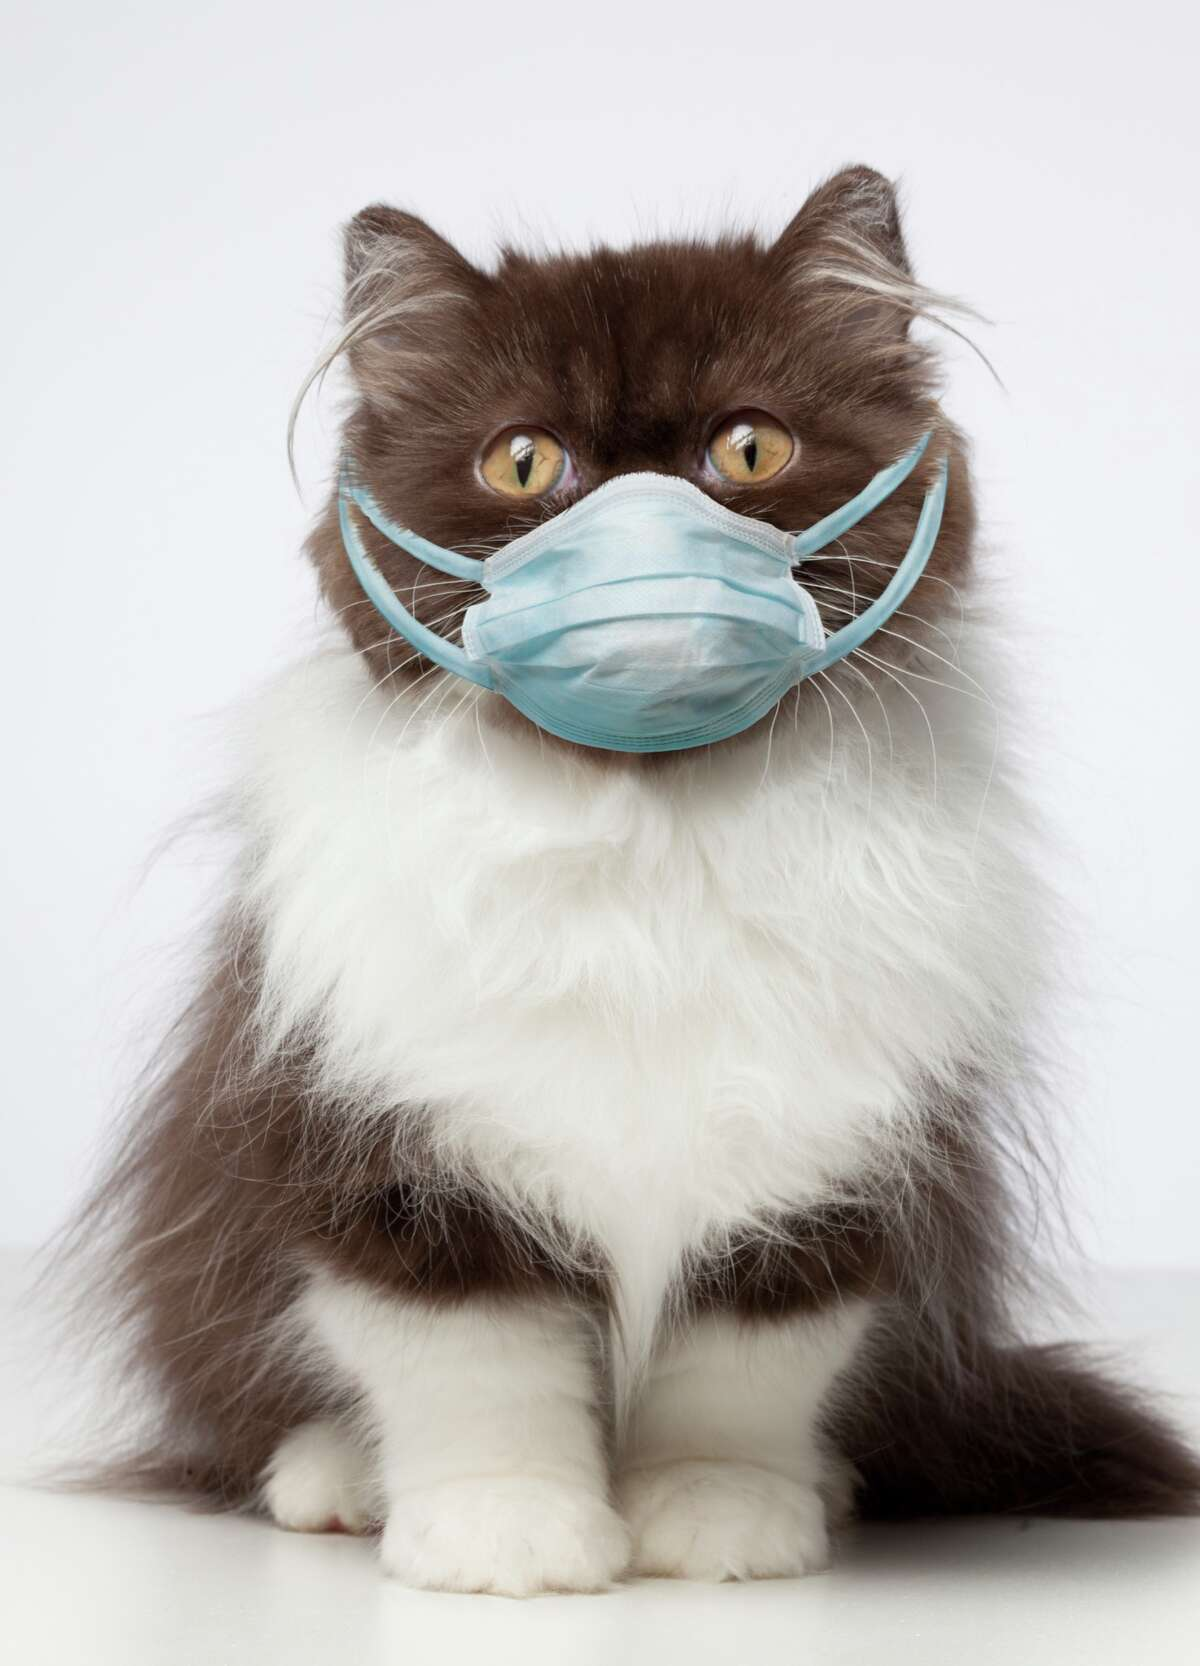 Keep cats indoors when possible to prevent them from interacting with other animals or people. Source: CDC